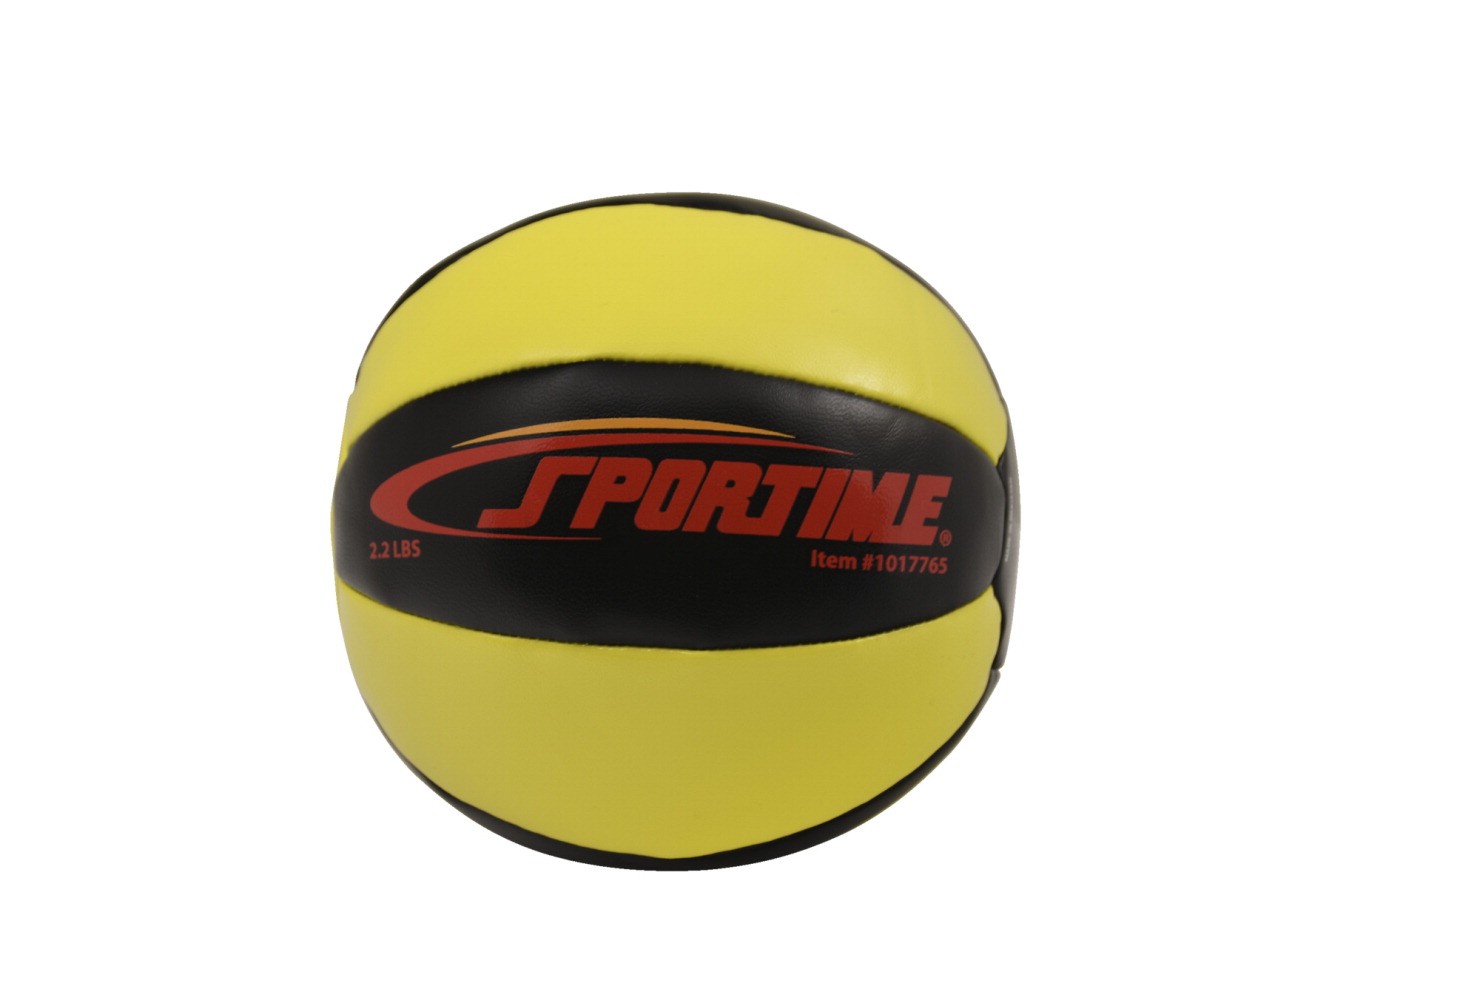 Sportime Strength Medicine Ball, 2.2 Pounds, Yellow/Black